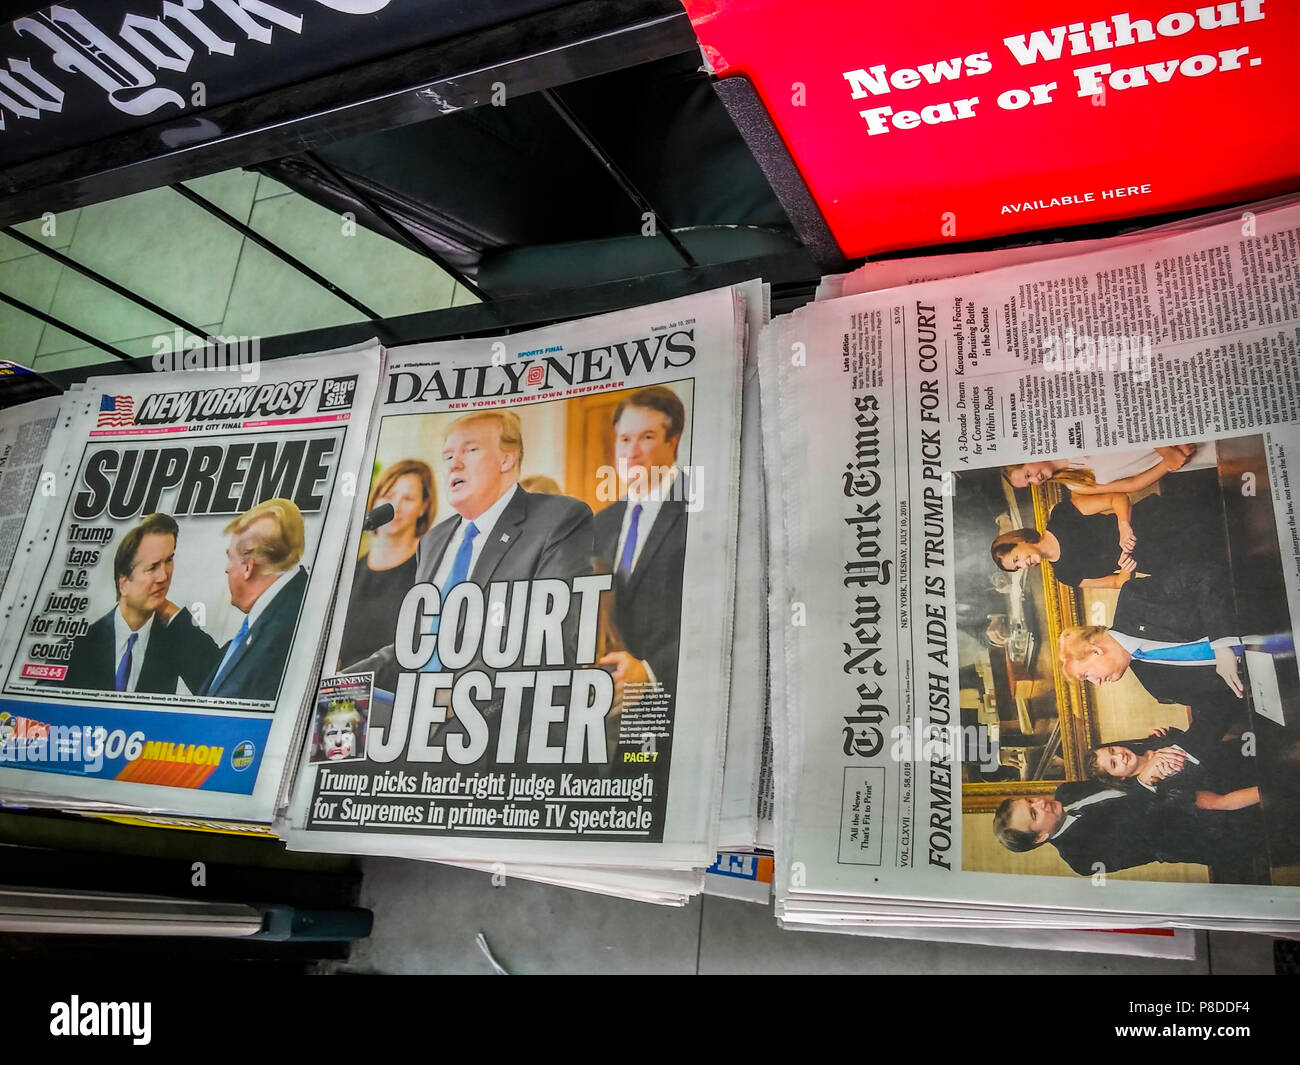 Headlines of New York newspapers on Tuesday, July 10, 2018 report on U.S. President Donal Trump's appointment, pending confirmation, of Brett Kavanaugh to the seat on the U.S. Supreme Court being vacated by the retirement of Justice Anthony Kennedy. (© Richard B. Levine) - Stock Image